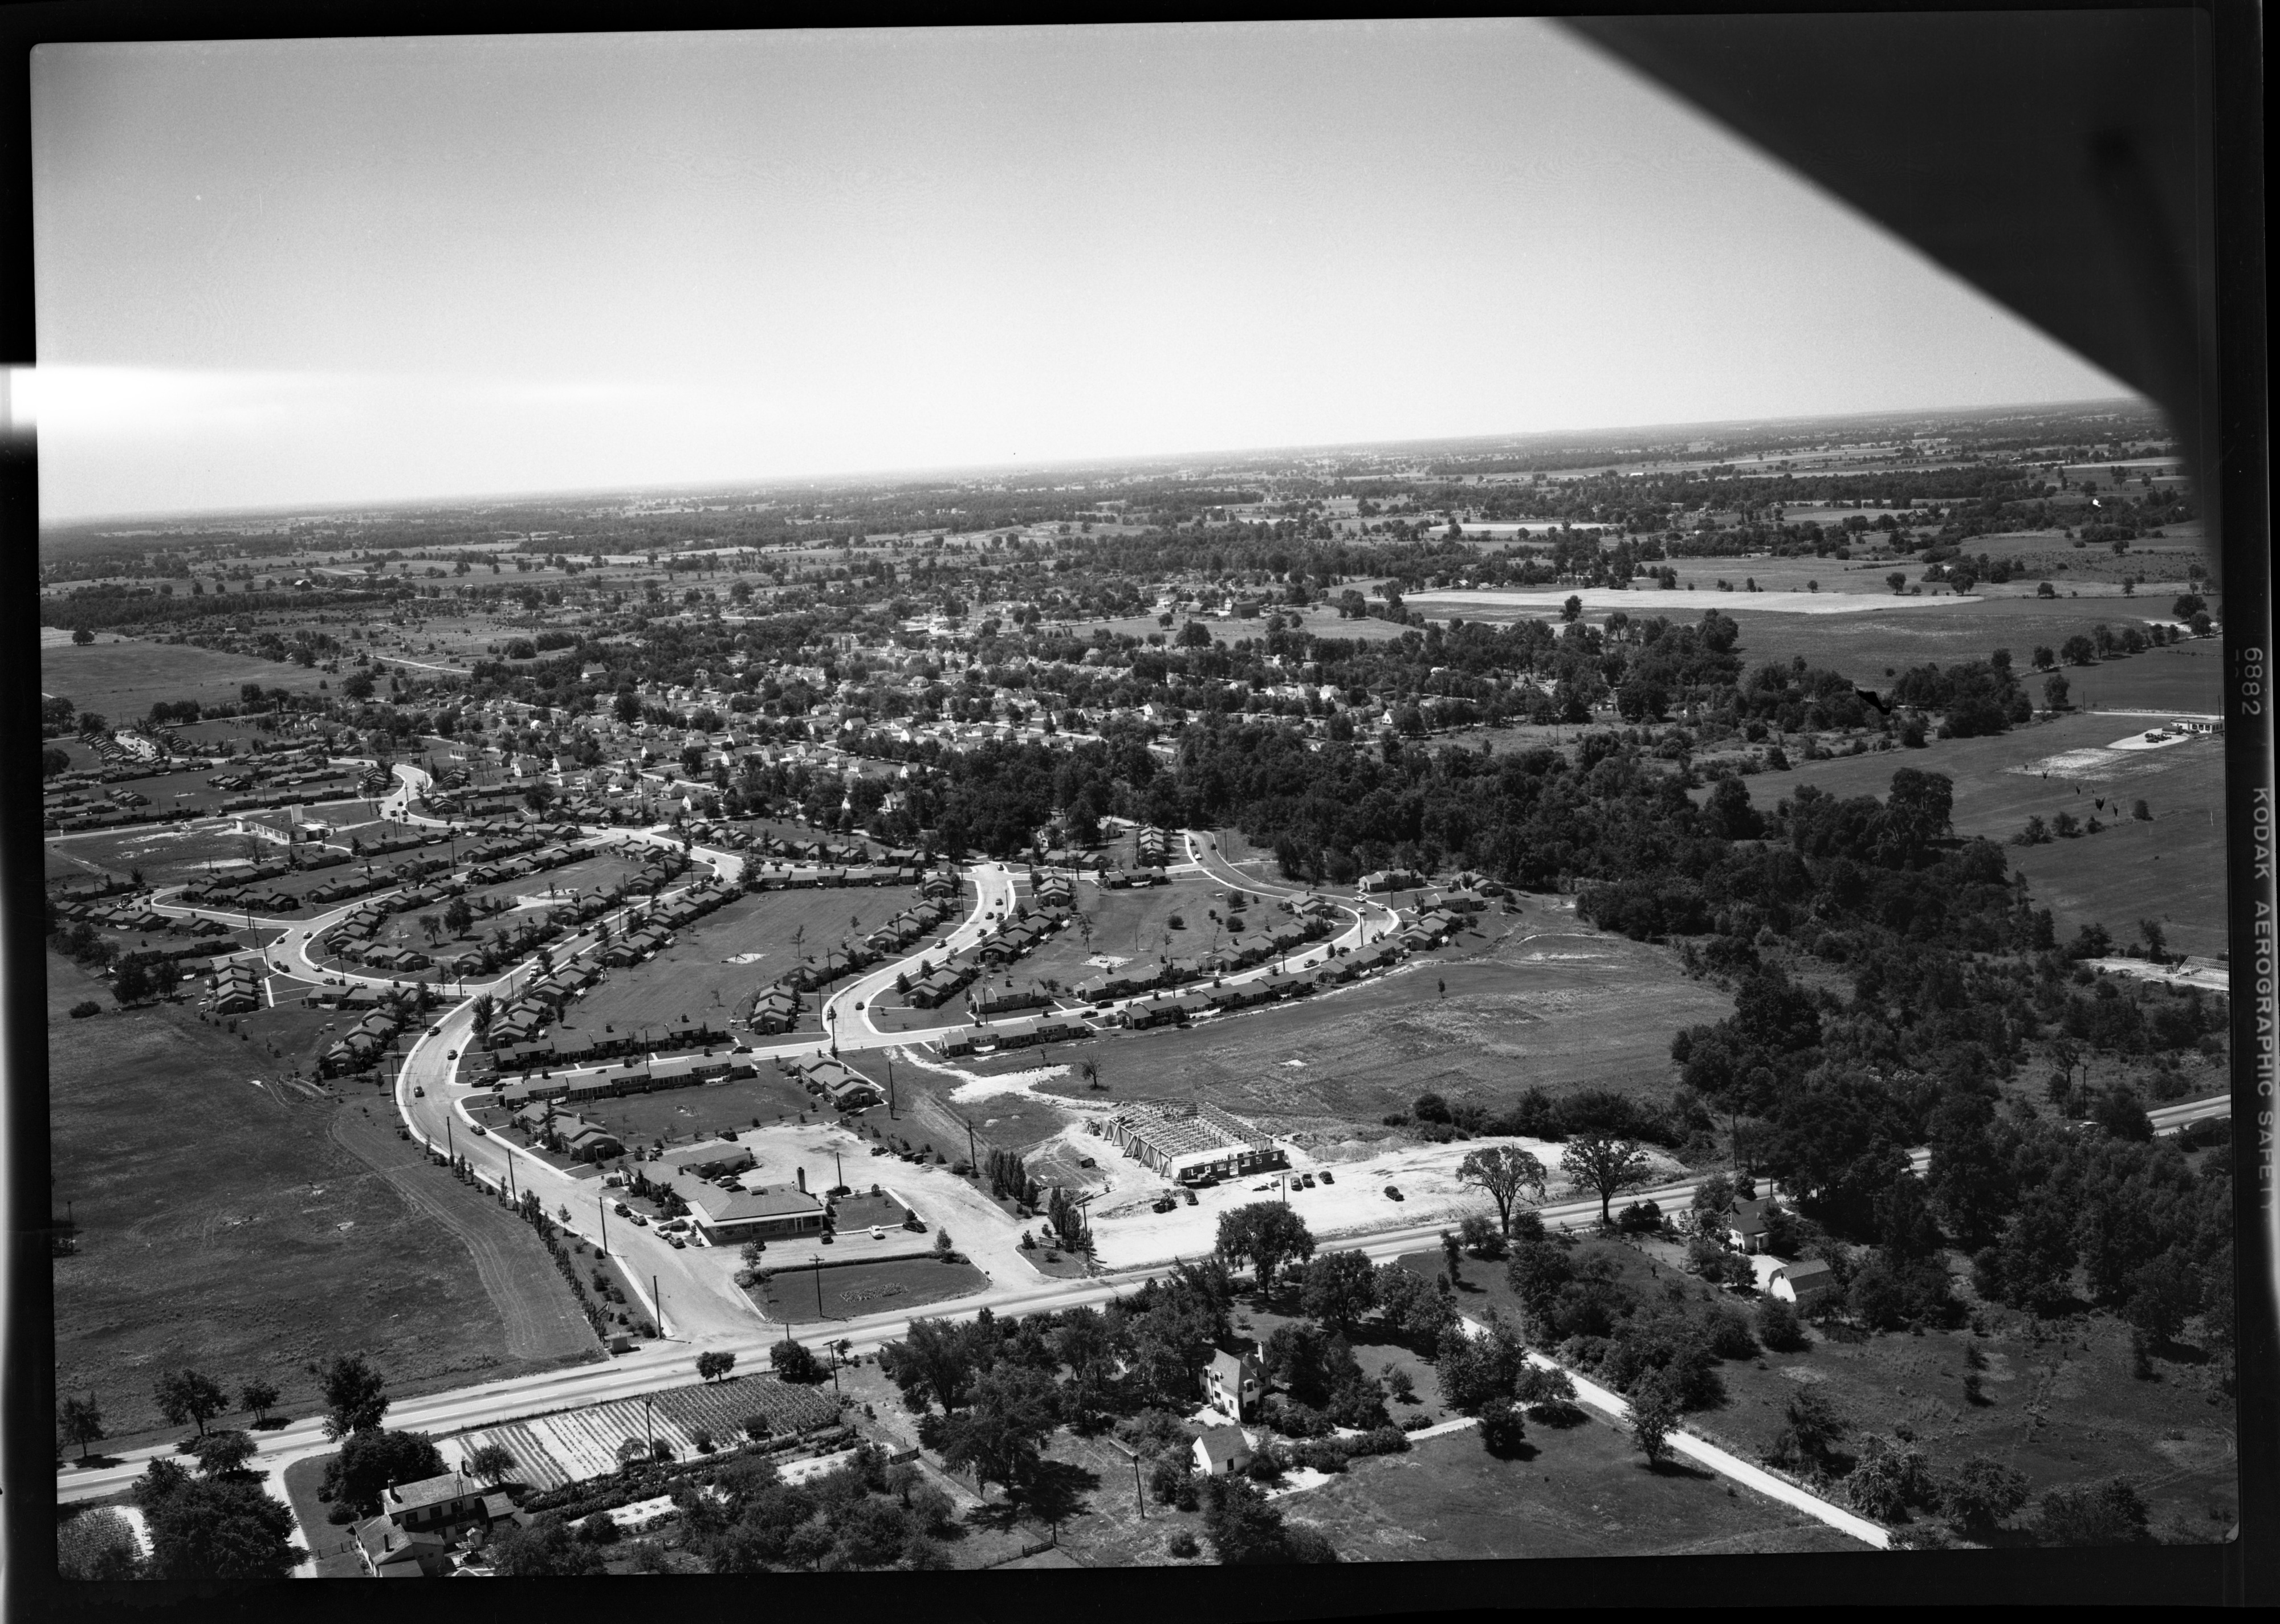 Pittsfield Village and East Ann Arbor, from air, July 1949 image